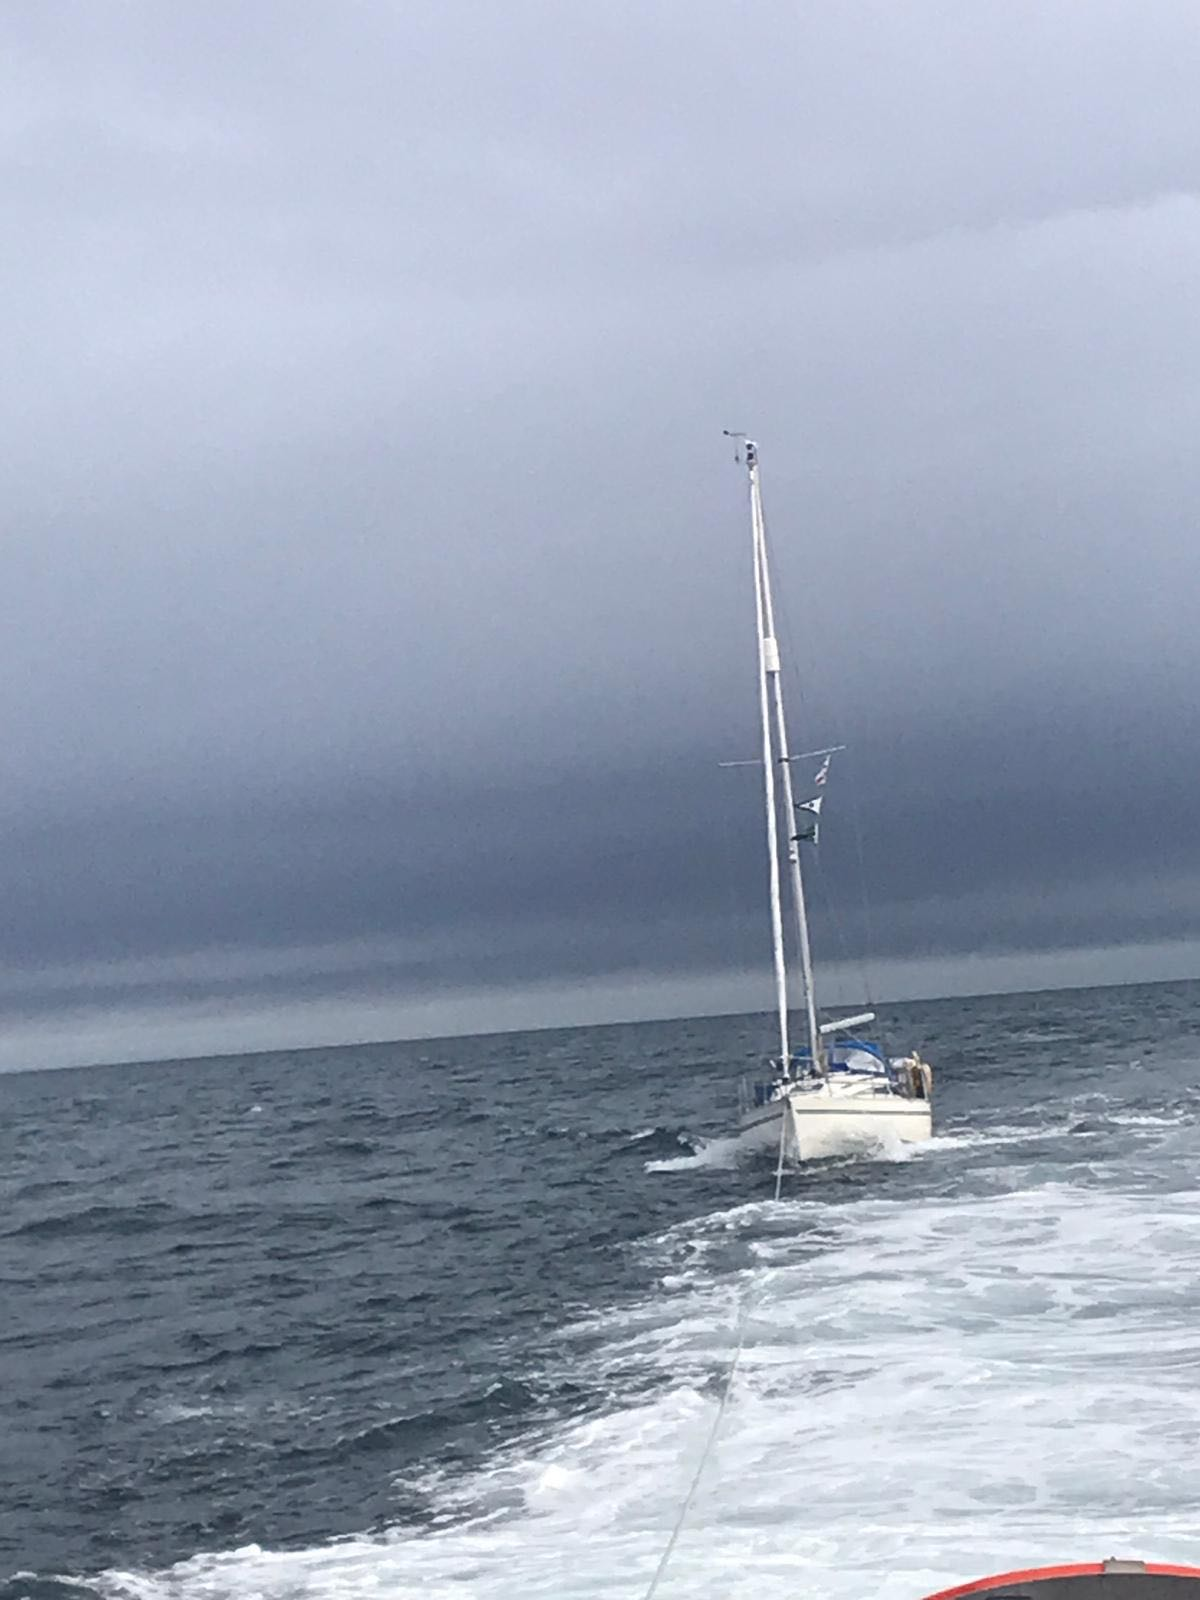 Yacht being towed 10.06.2019 photograph by volunteer crewmember Simon Collins